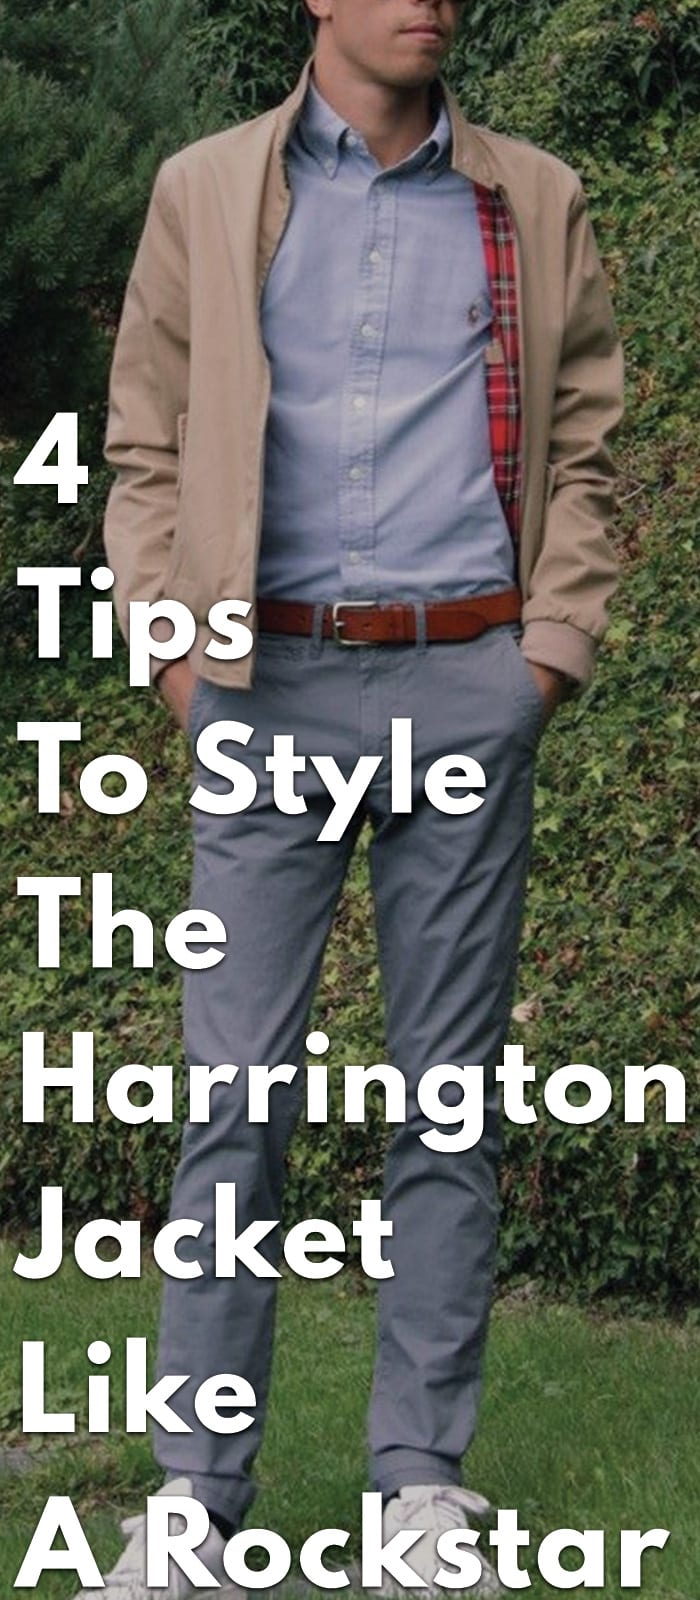 4-Tips-To-Style-The-Harrington-Jacket-Like-A-Rockstar